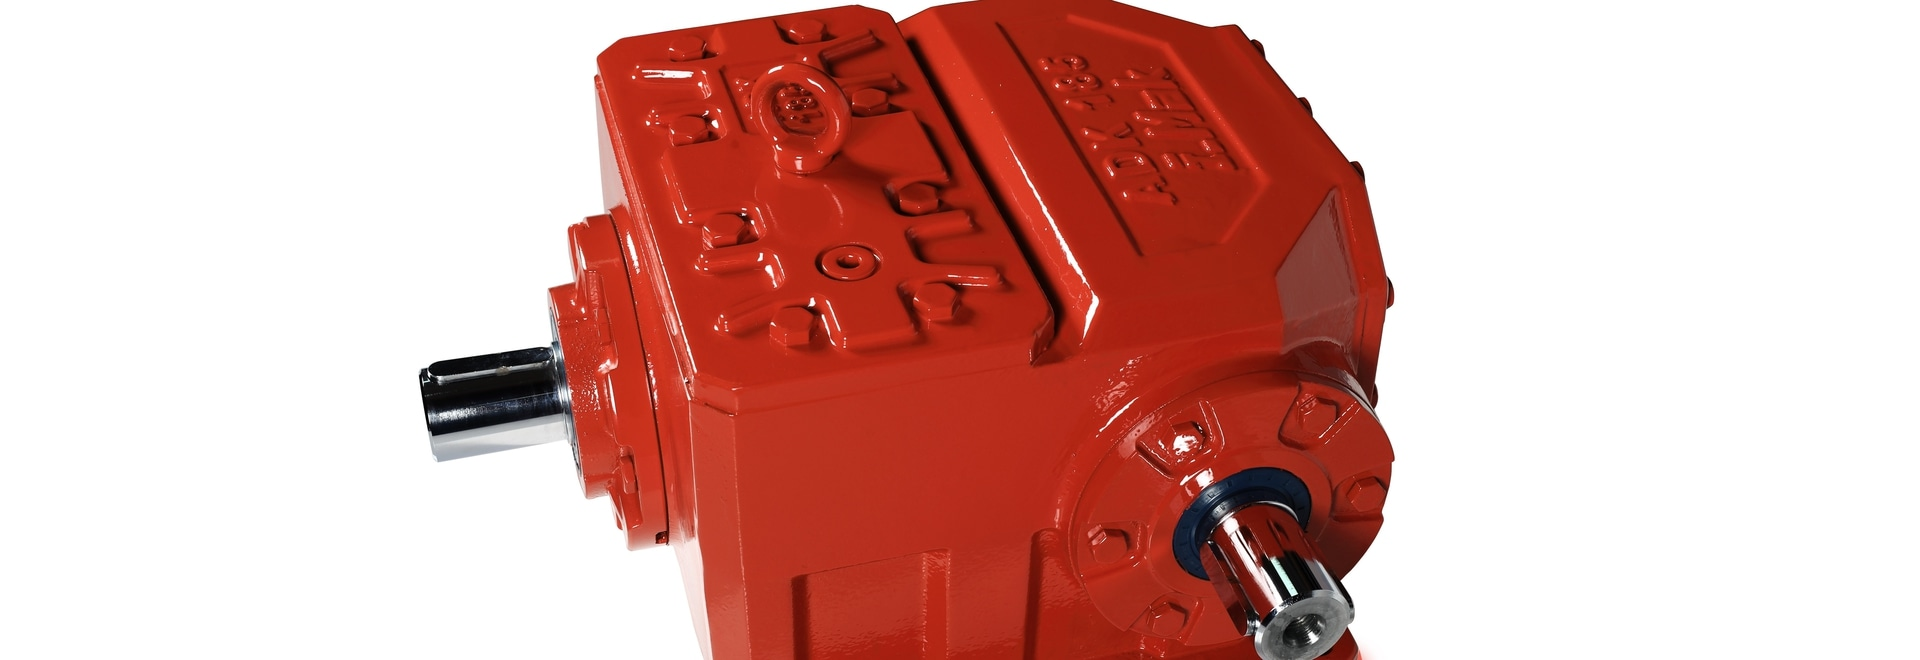 ADS Gearboxes for roll form applications